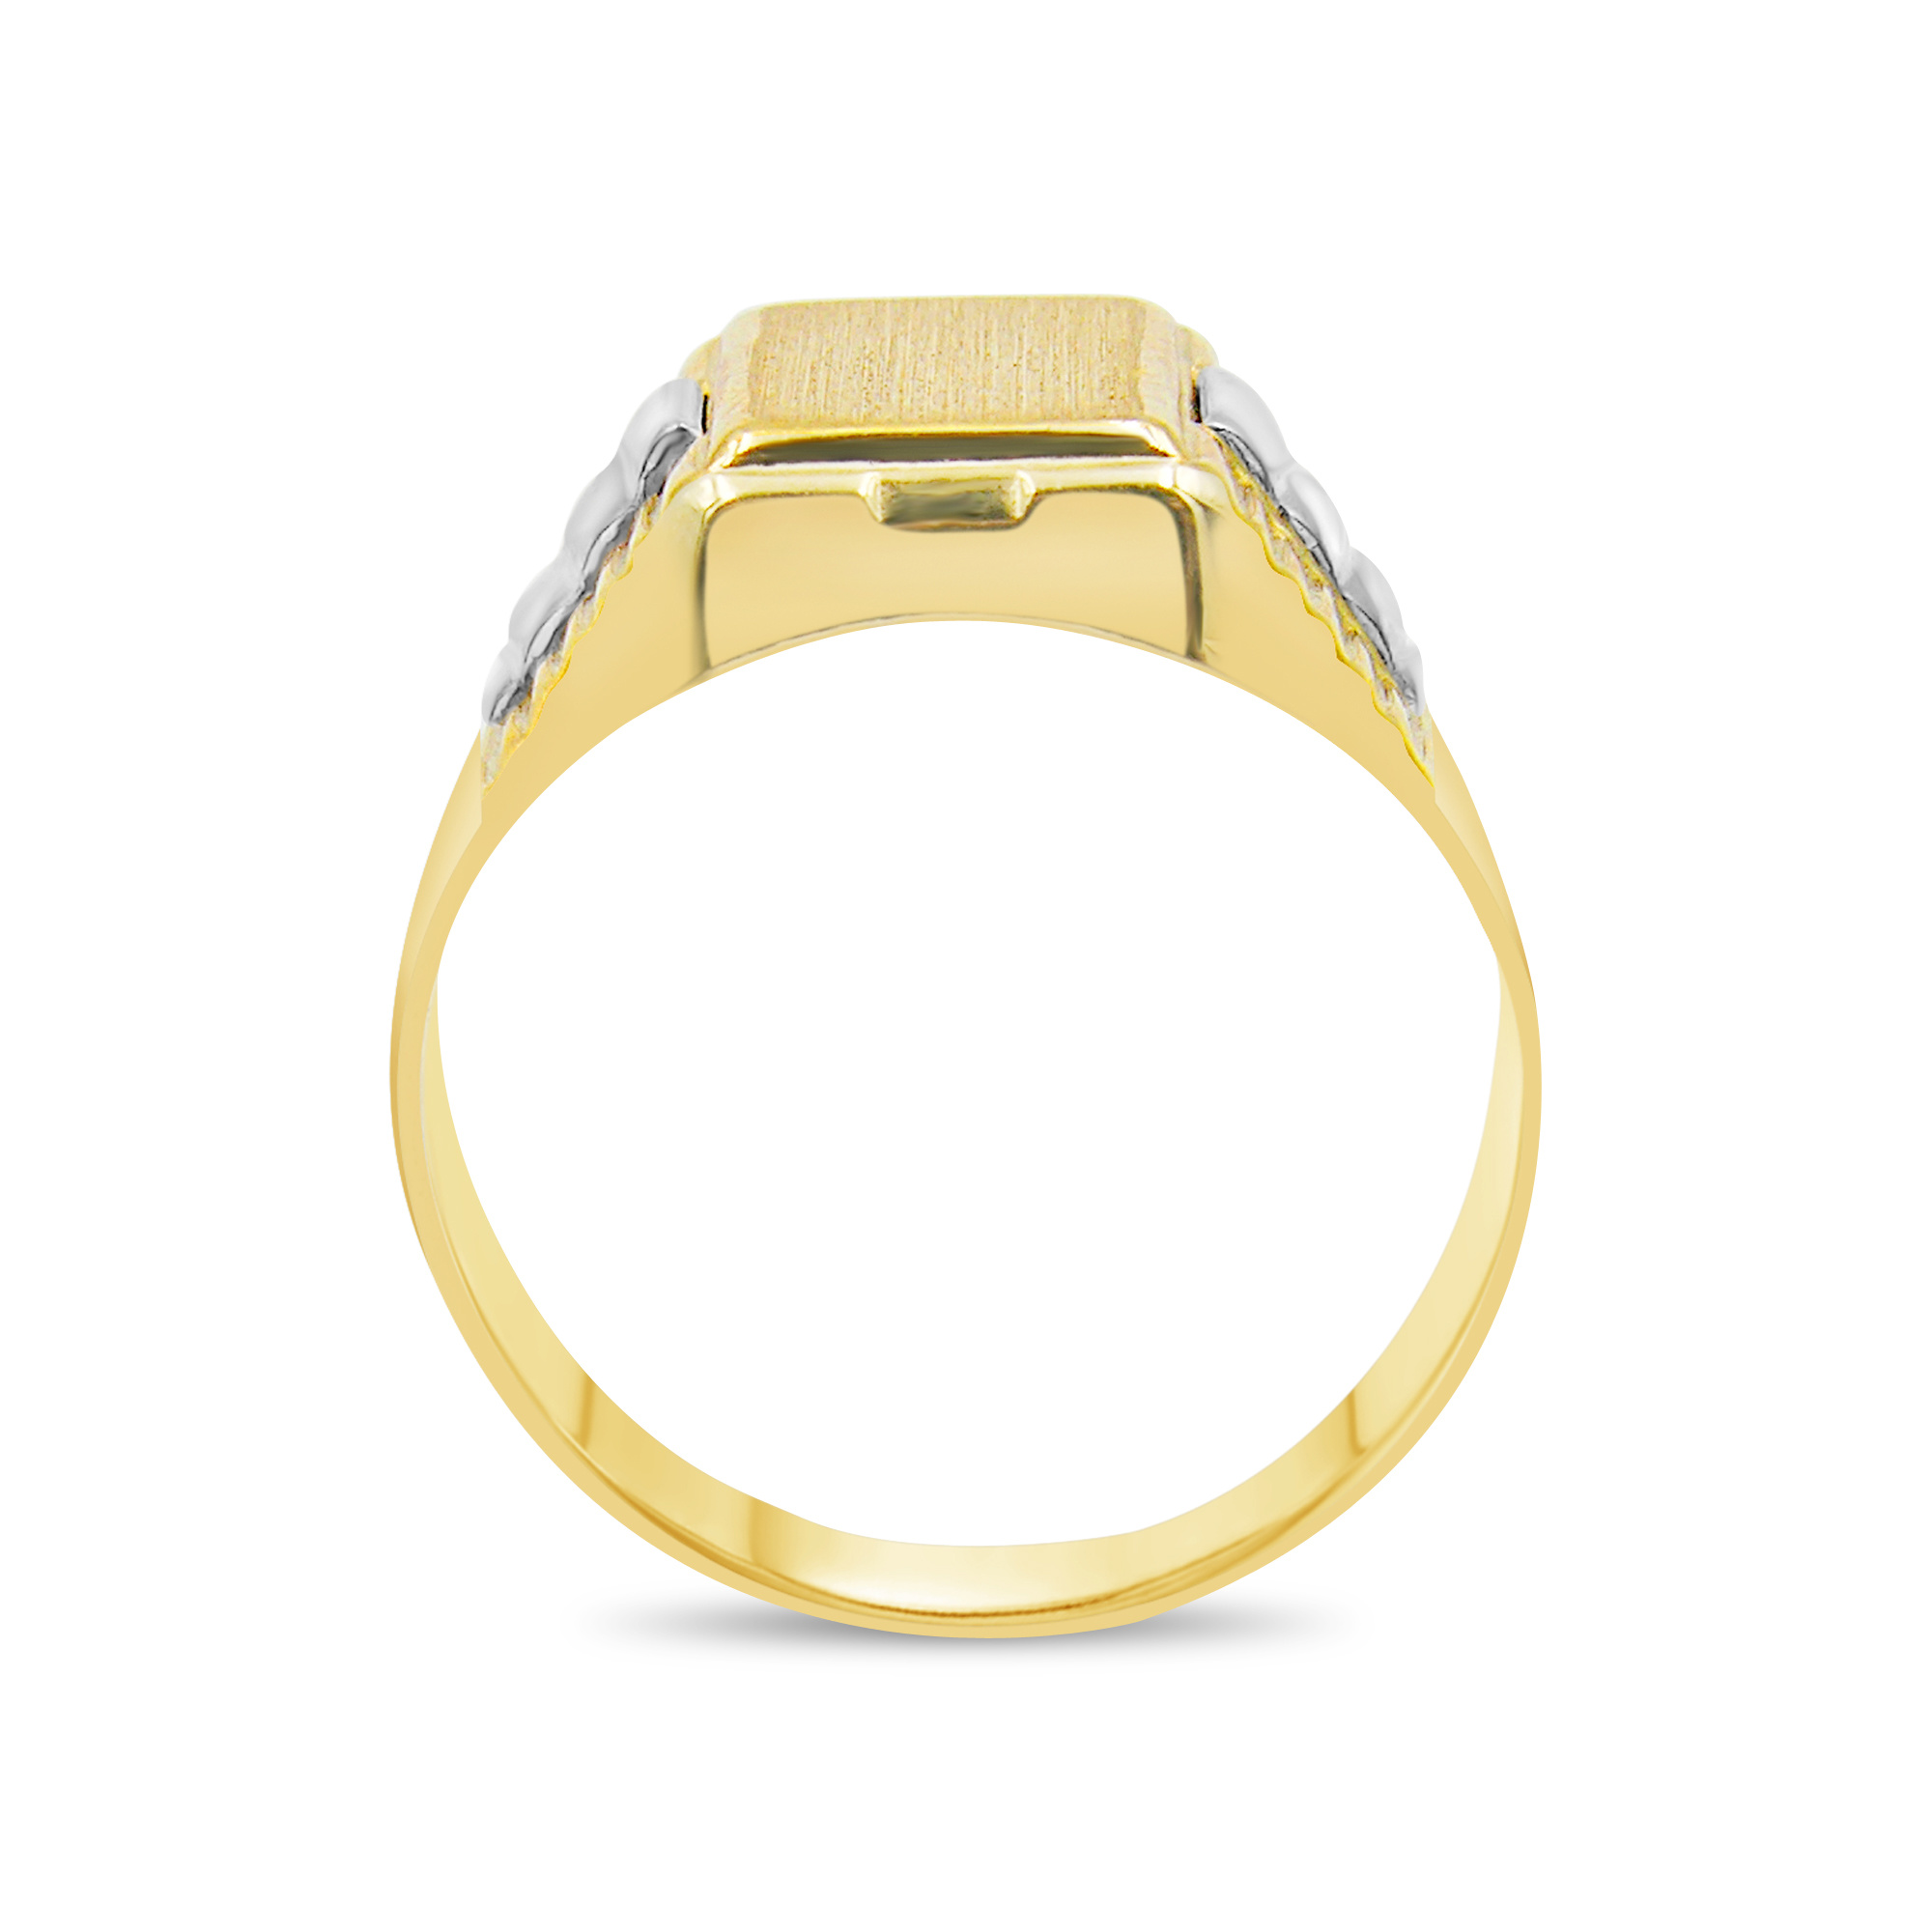 18 kt yellow & white gold men's ring